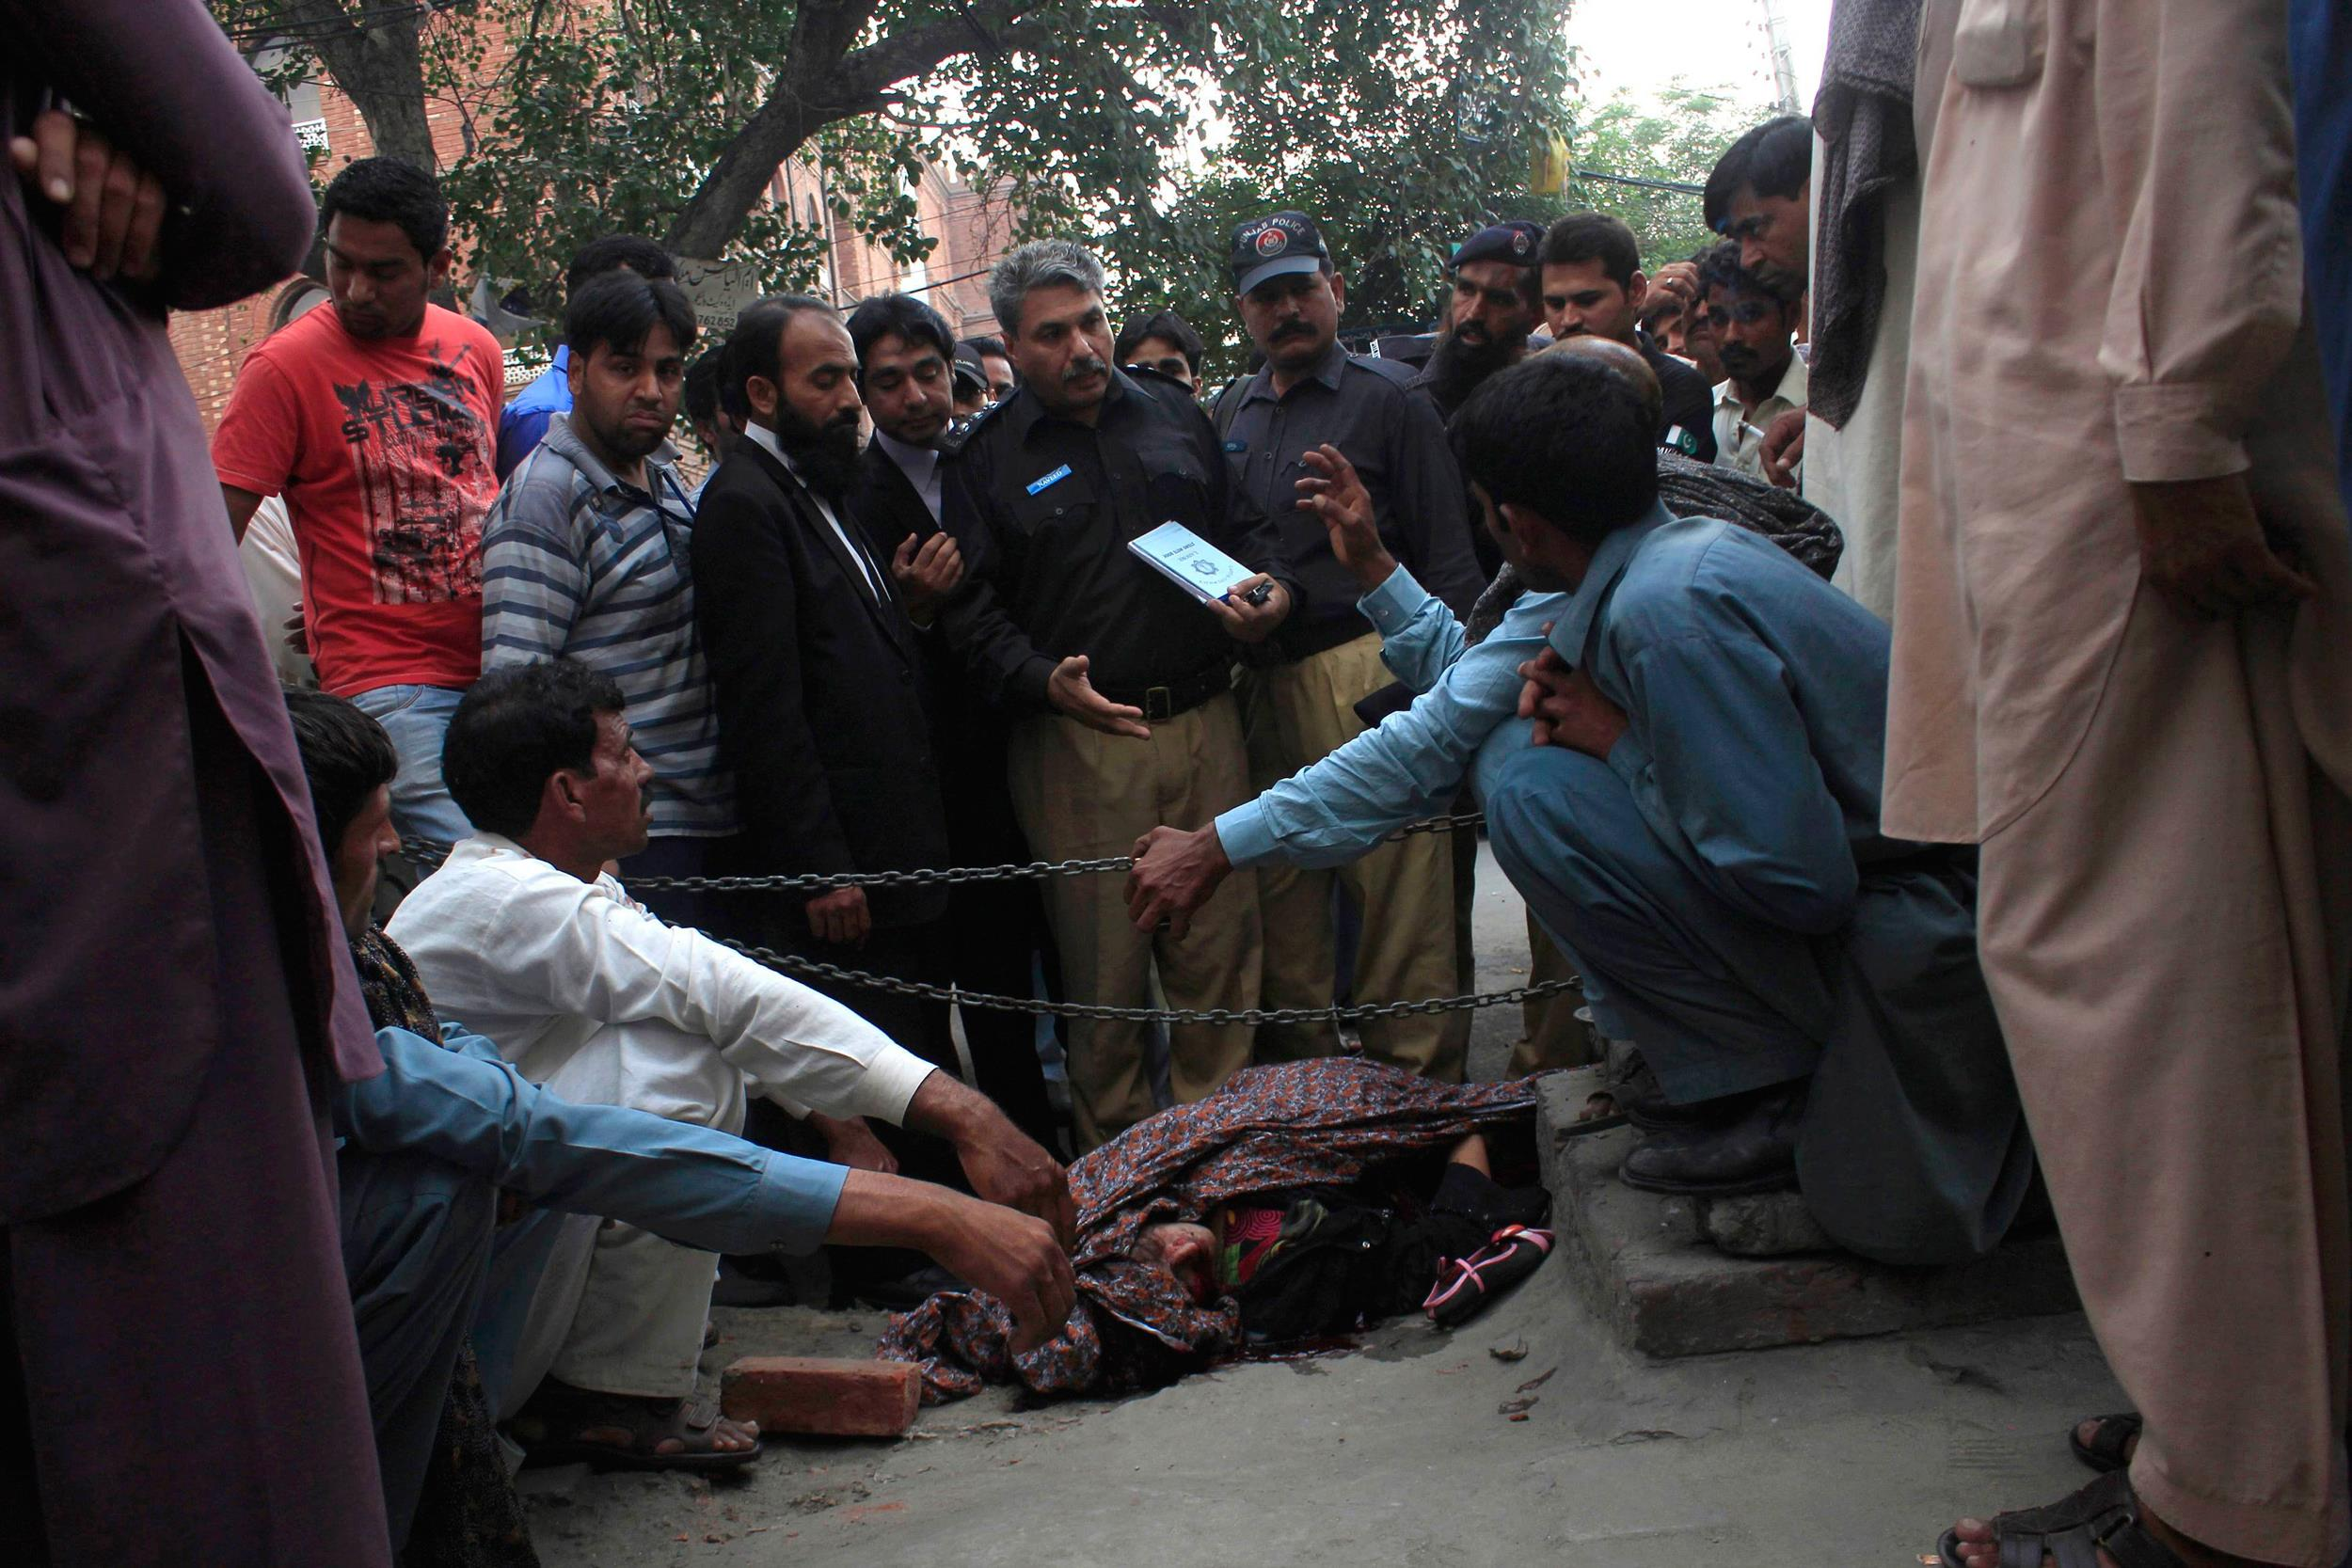 Image: Police collect evidence near body of Farzana Iqbal, killed by family members, at site near Lahore High Court building in Lahore